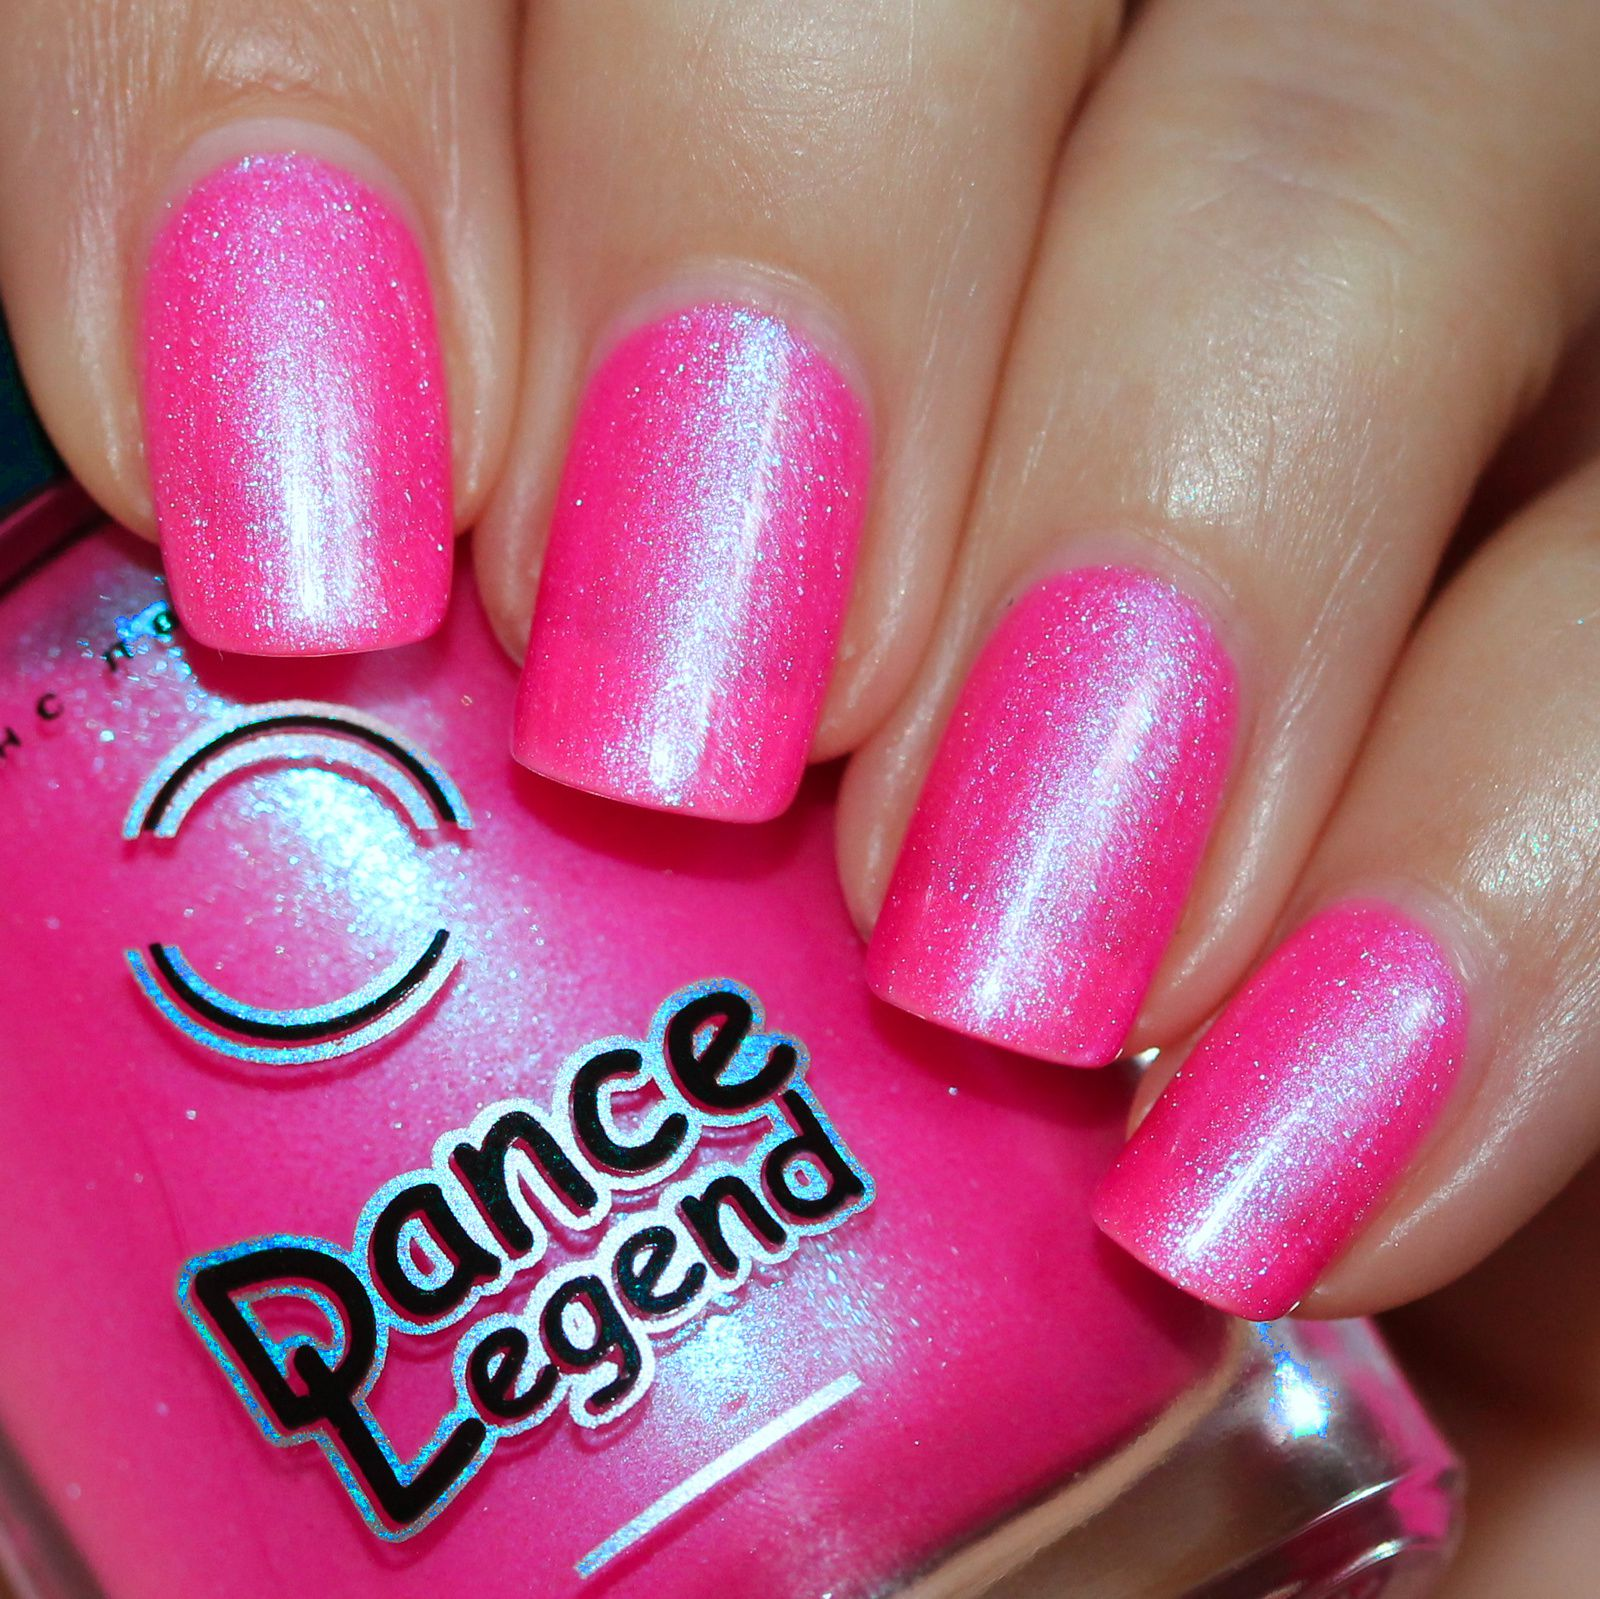 Duri Rejuvacote / Dance Legend 548 / Sally Hansen Miracle Gel Top Coat